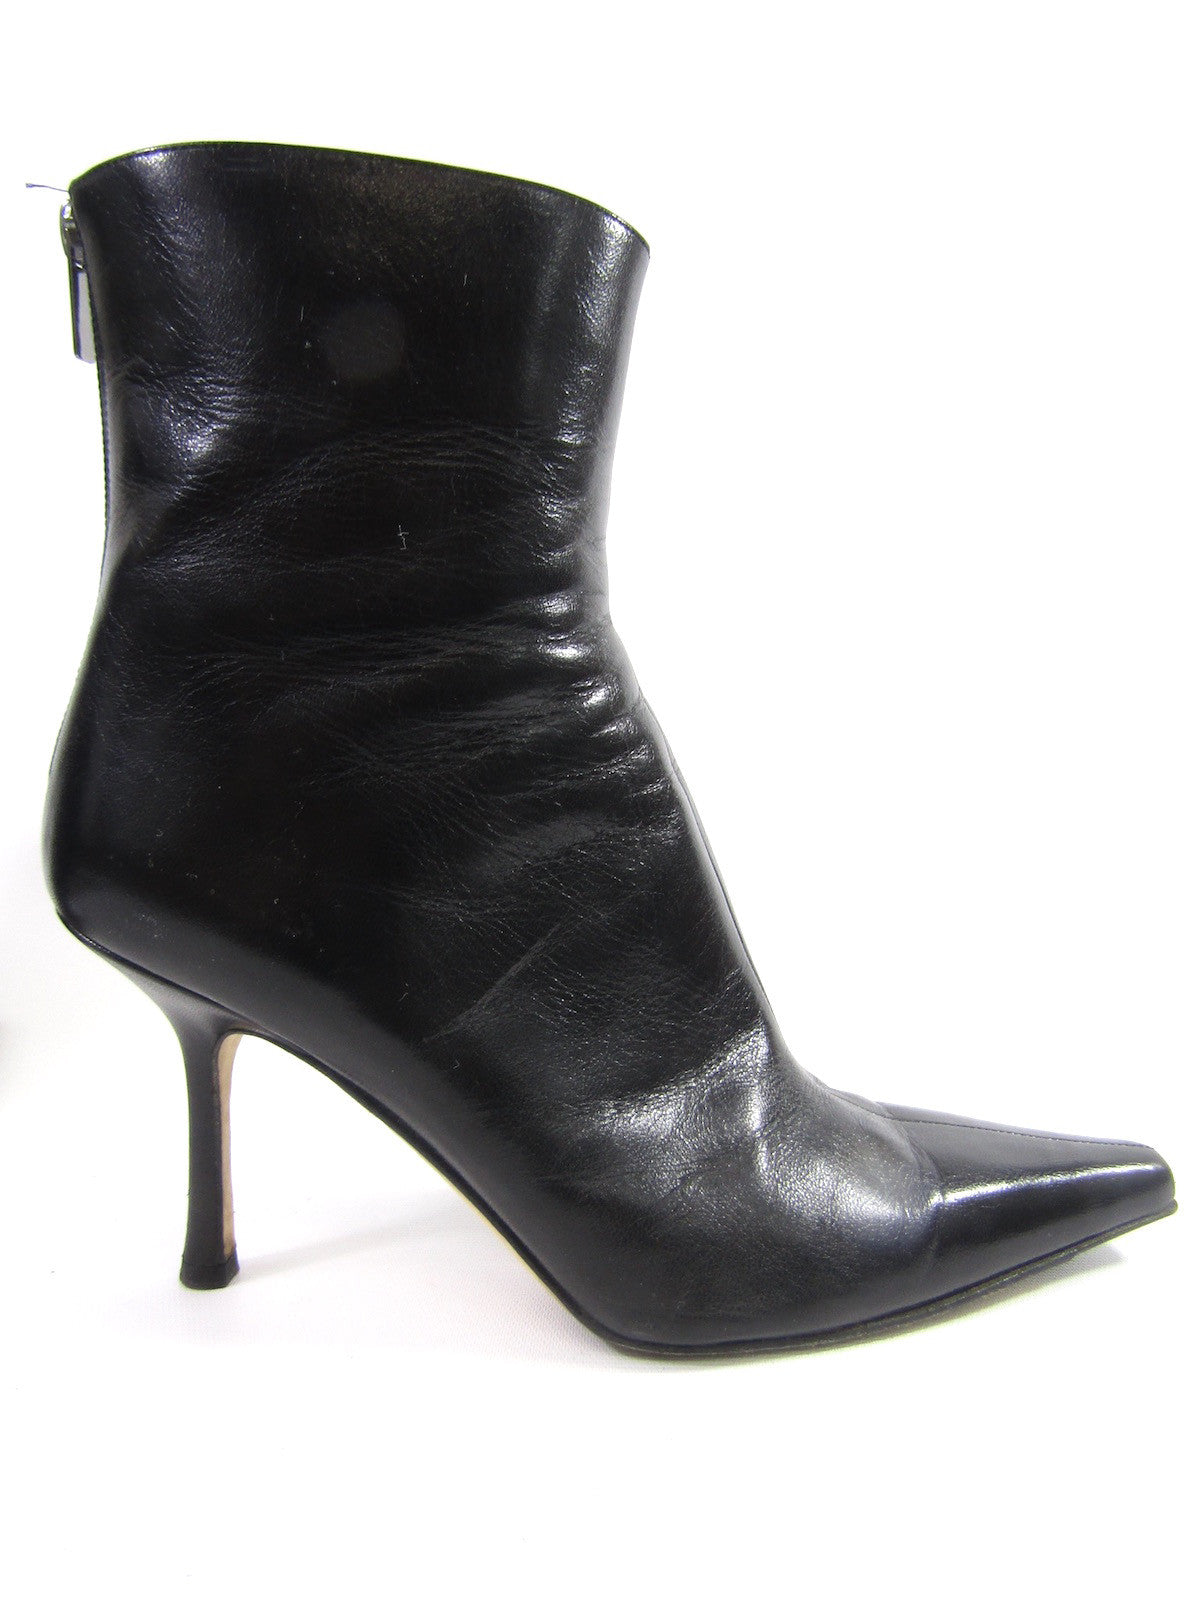 ce8f60b5eb7 ... good jimmy choo women black leather pointy toe ankle booties boots shoes  size 39 3b89f da795